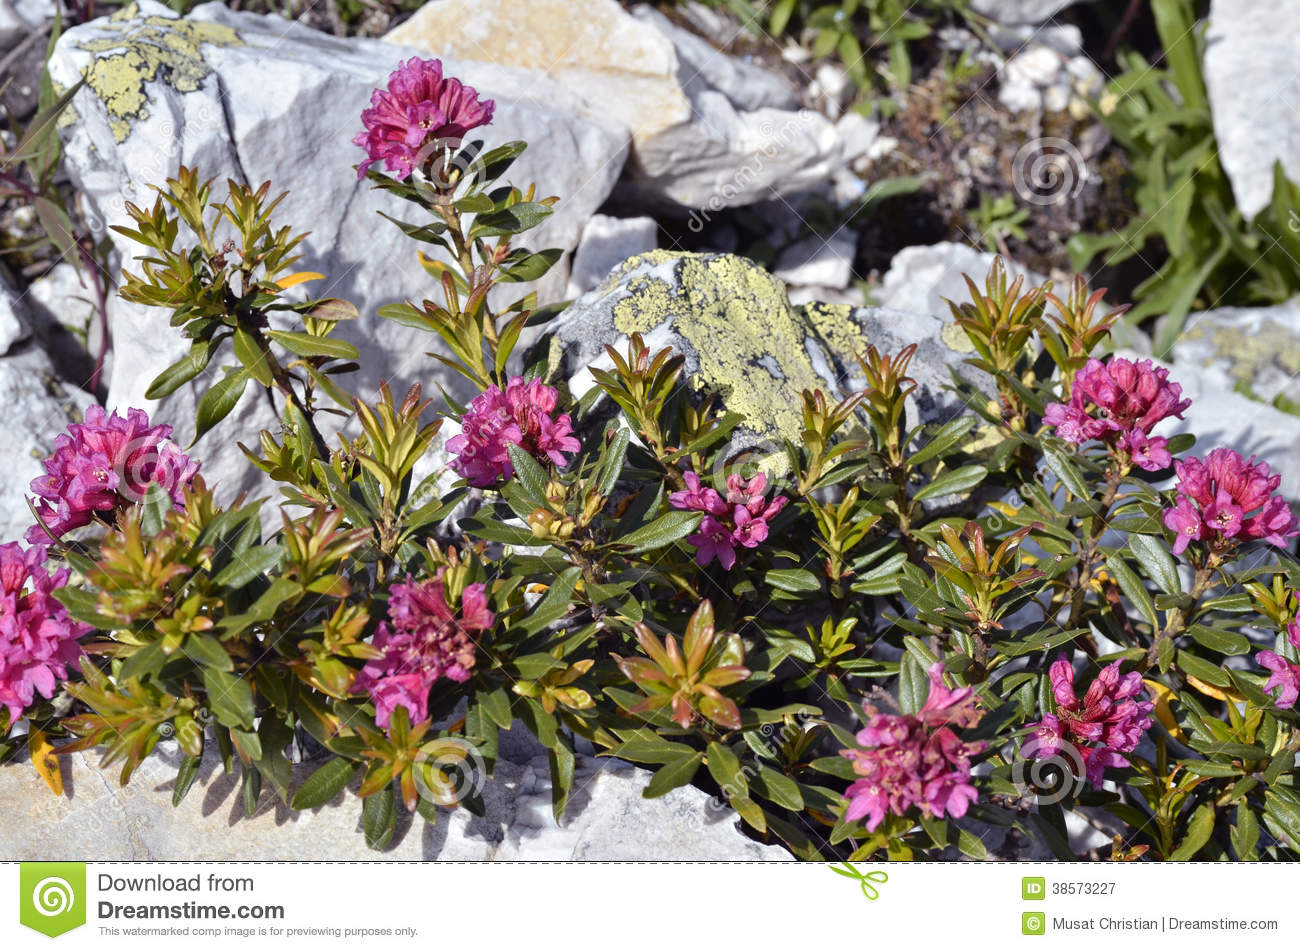 Alpenrose Flower In The French Alps Royalty Free Stock graphy Image 3